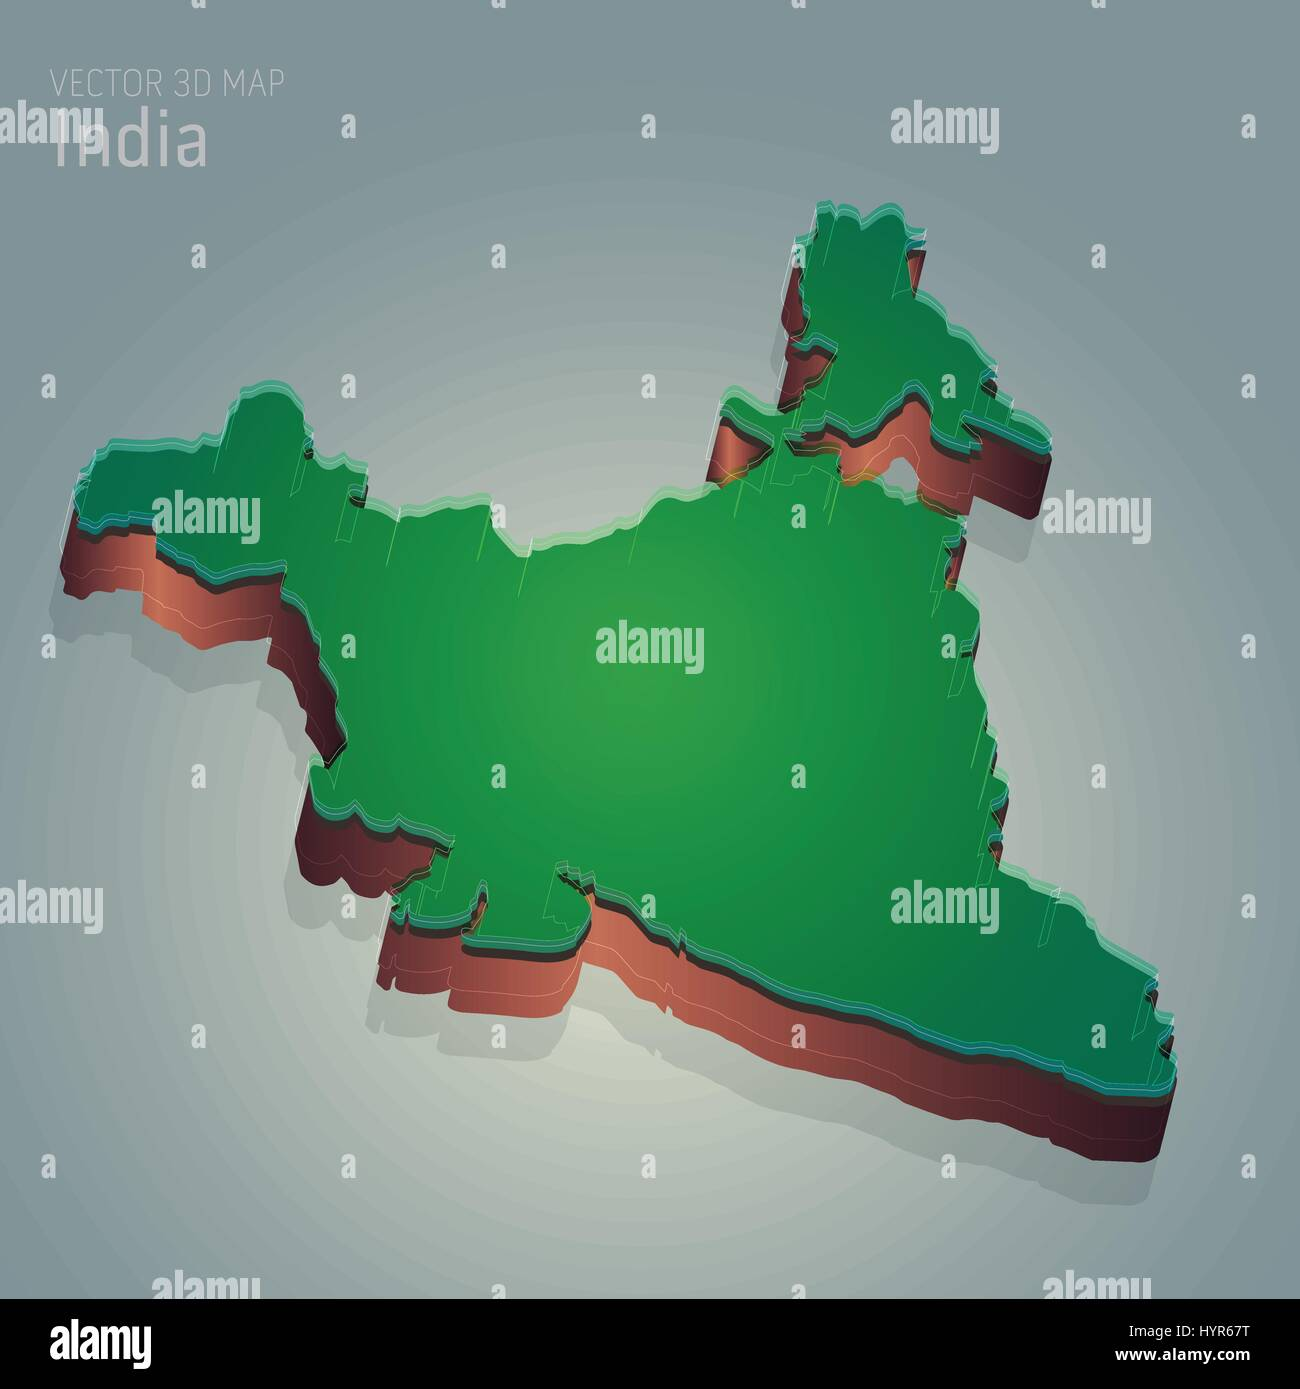 India 3D Map vector 3d map illustration of INDIA Stock Vector Art